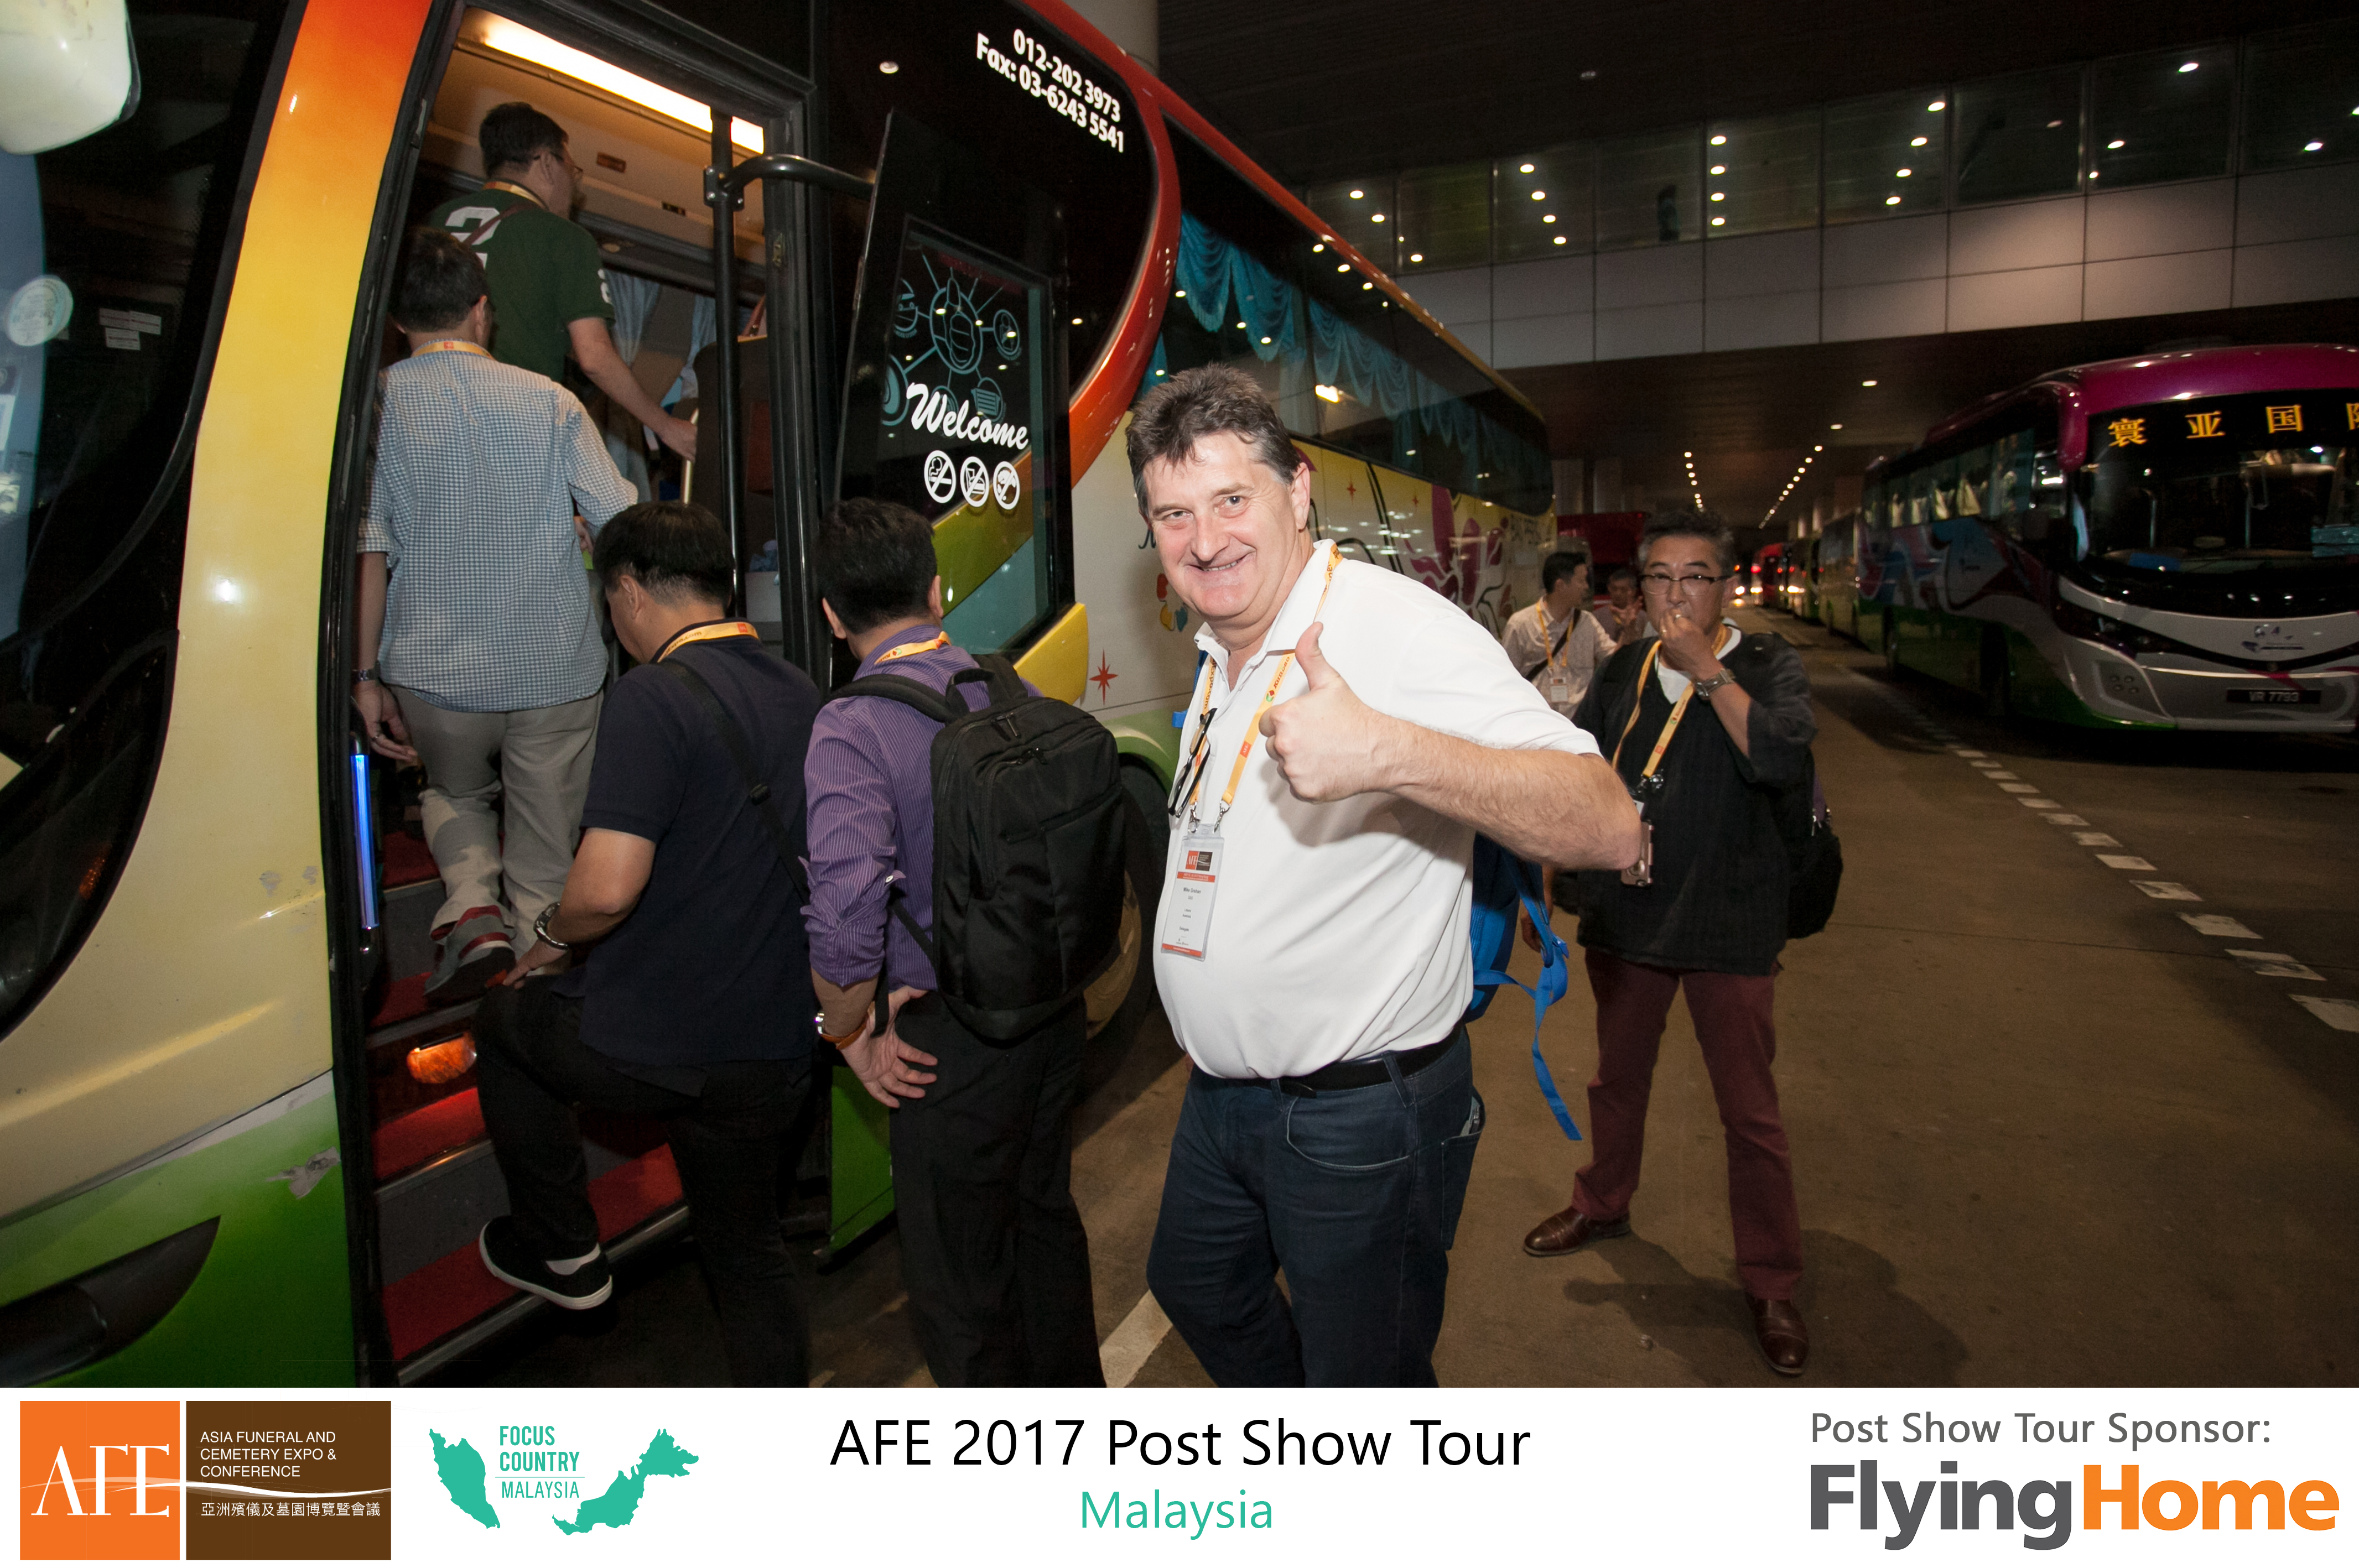 AFE Post Show Tour 2017 Day 1 - 33